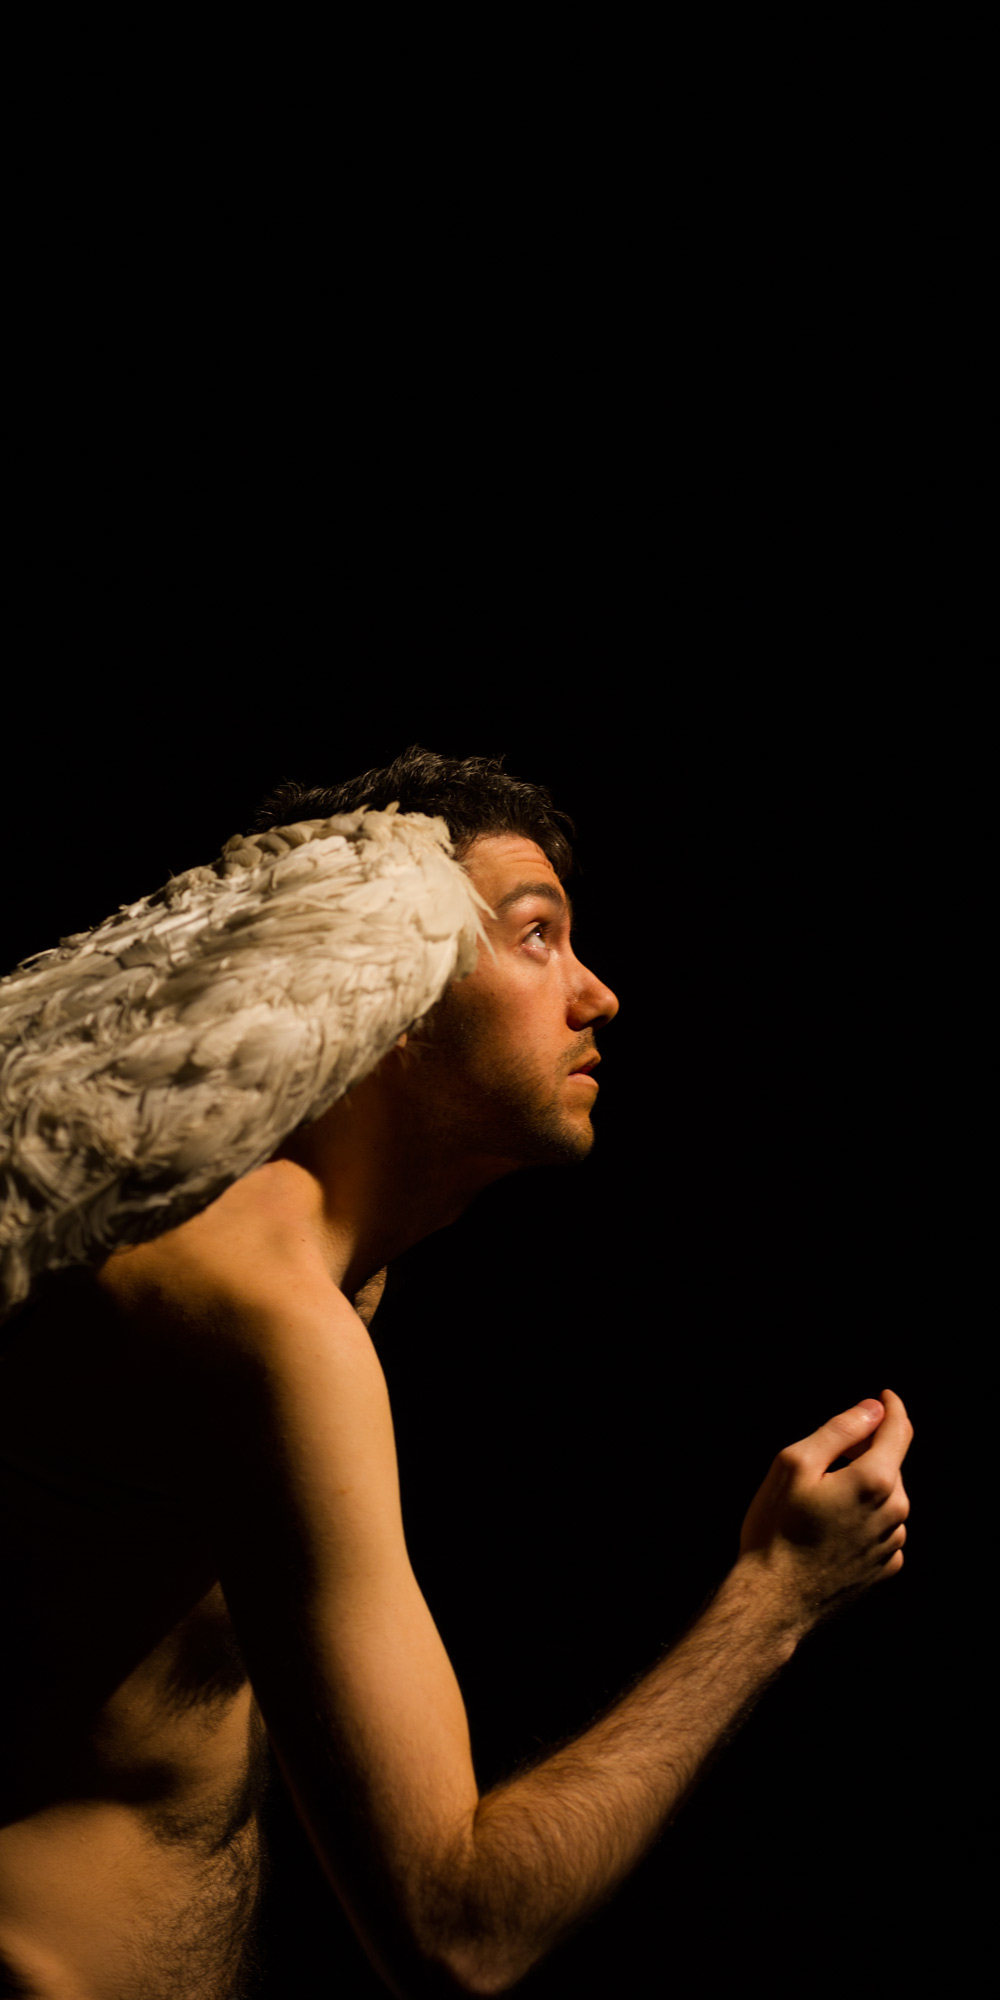 """Santino - Growing wings"" (2014) Created by Jacek Ludwig Scarso in co-production with Elastic Theatre Photography Assistant: Gerard Puigmal Performers: Antony Baker and Daren Pritchard Copyright Jacek Ludwig Scarso / Elastic Theatre 2014"